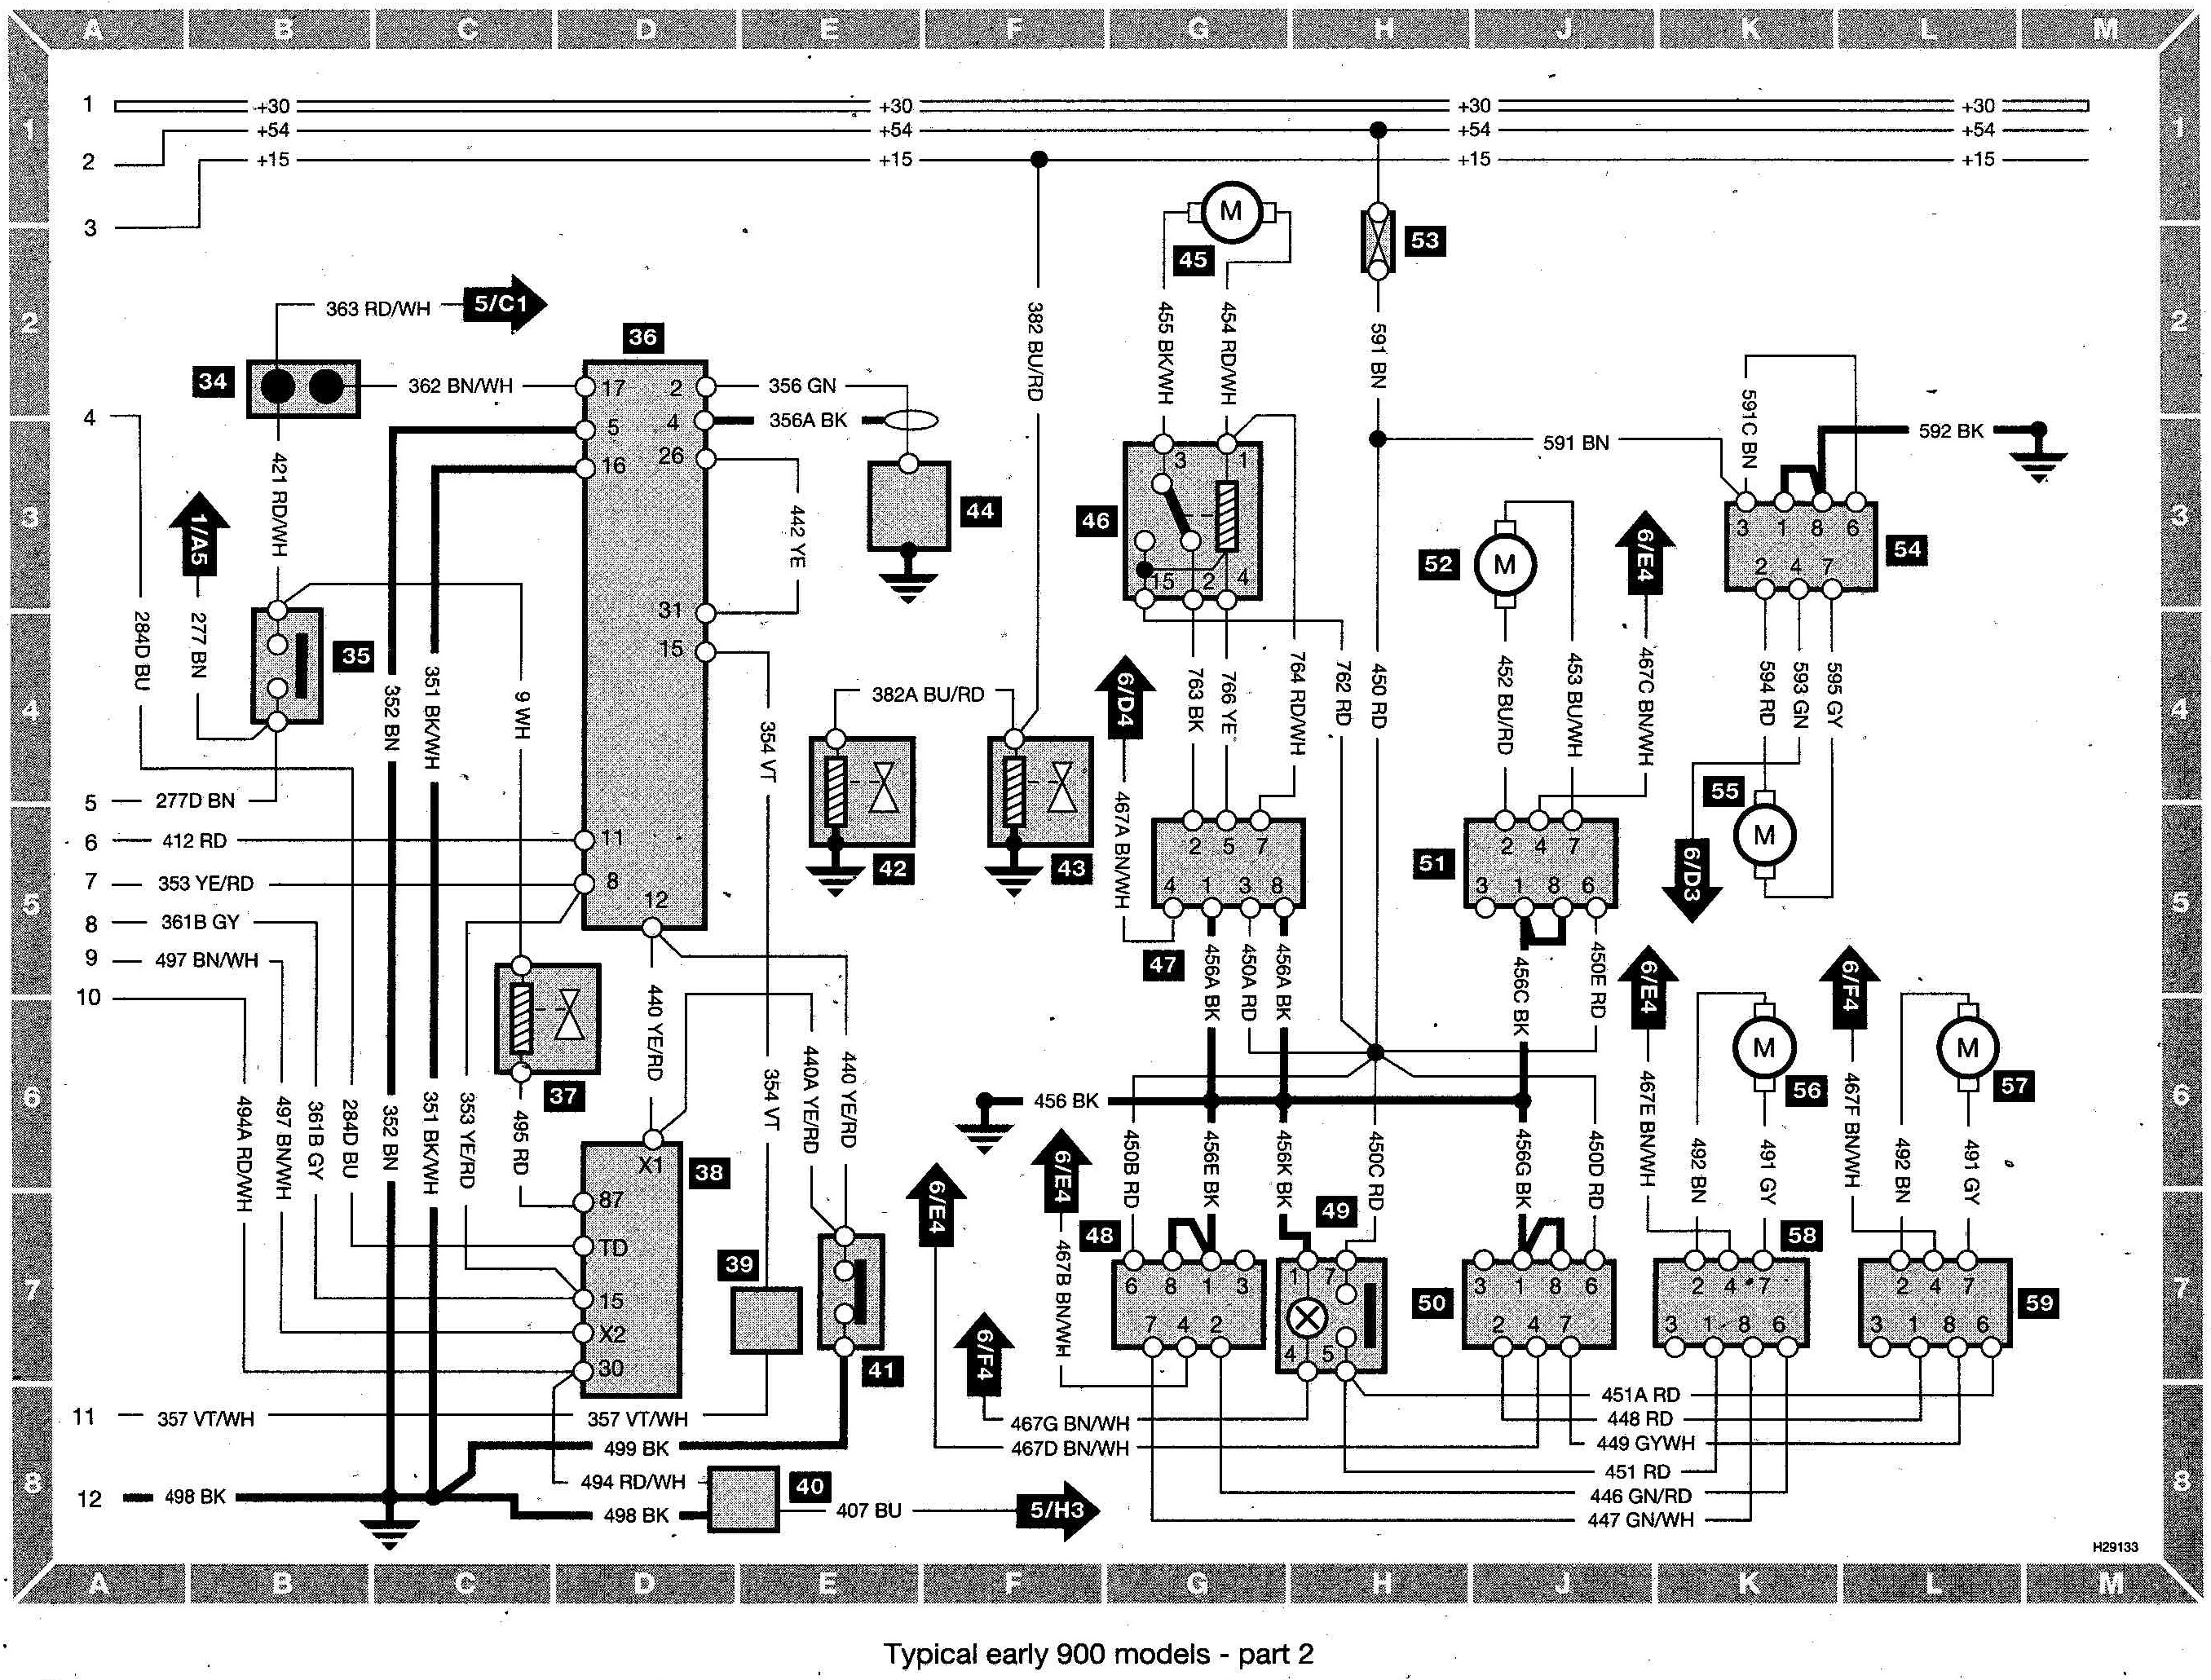 Saab 900 Wiring diagram (early models) part 2 index of saab saab 900 wiring diagram (early models) 2002 Saab 9.5 Turbo at bayanpartner.co